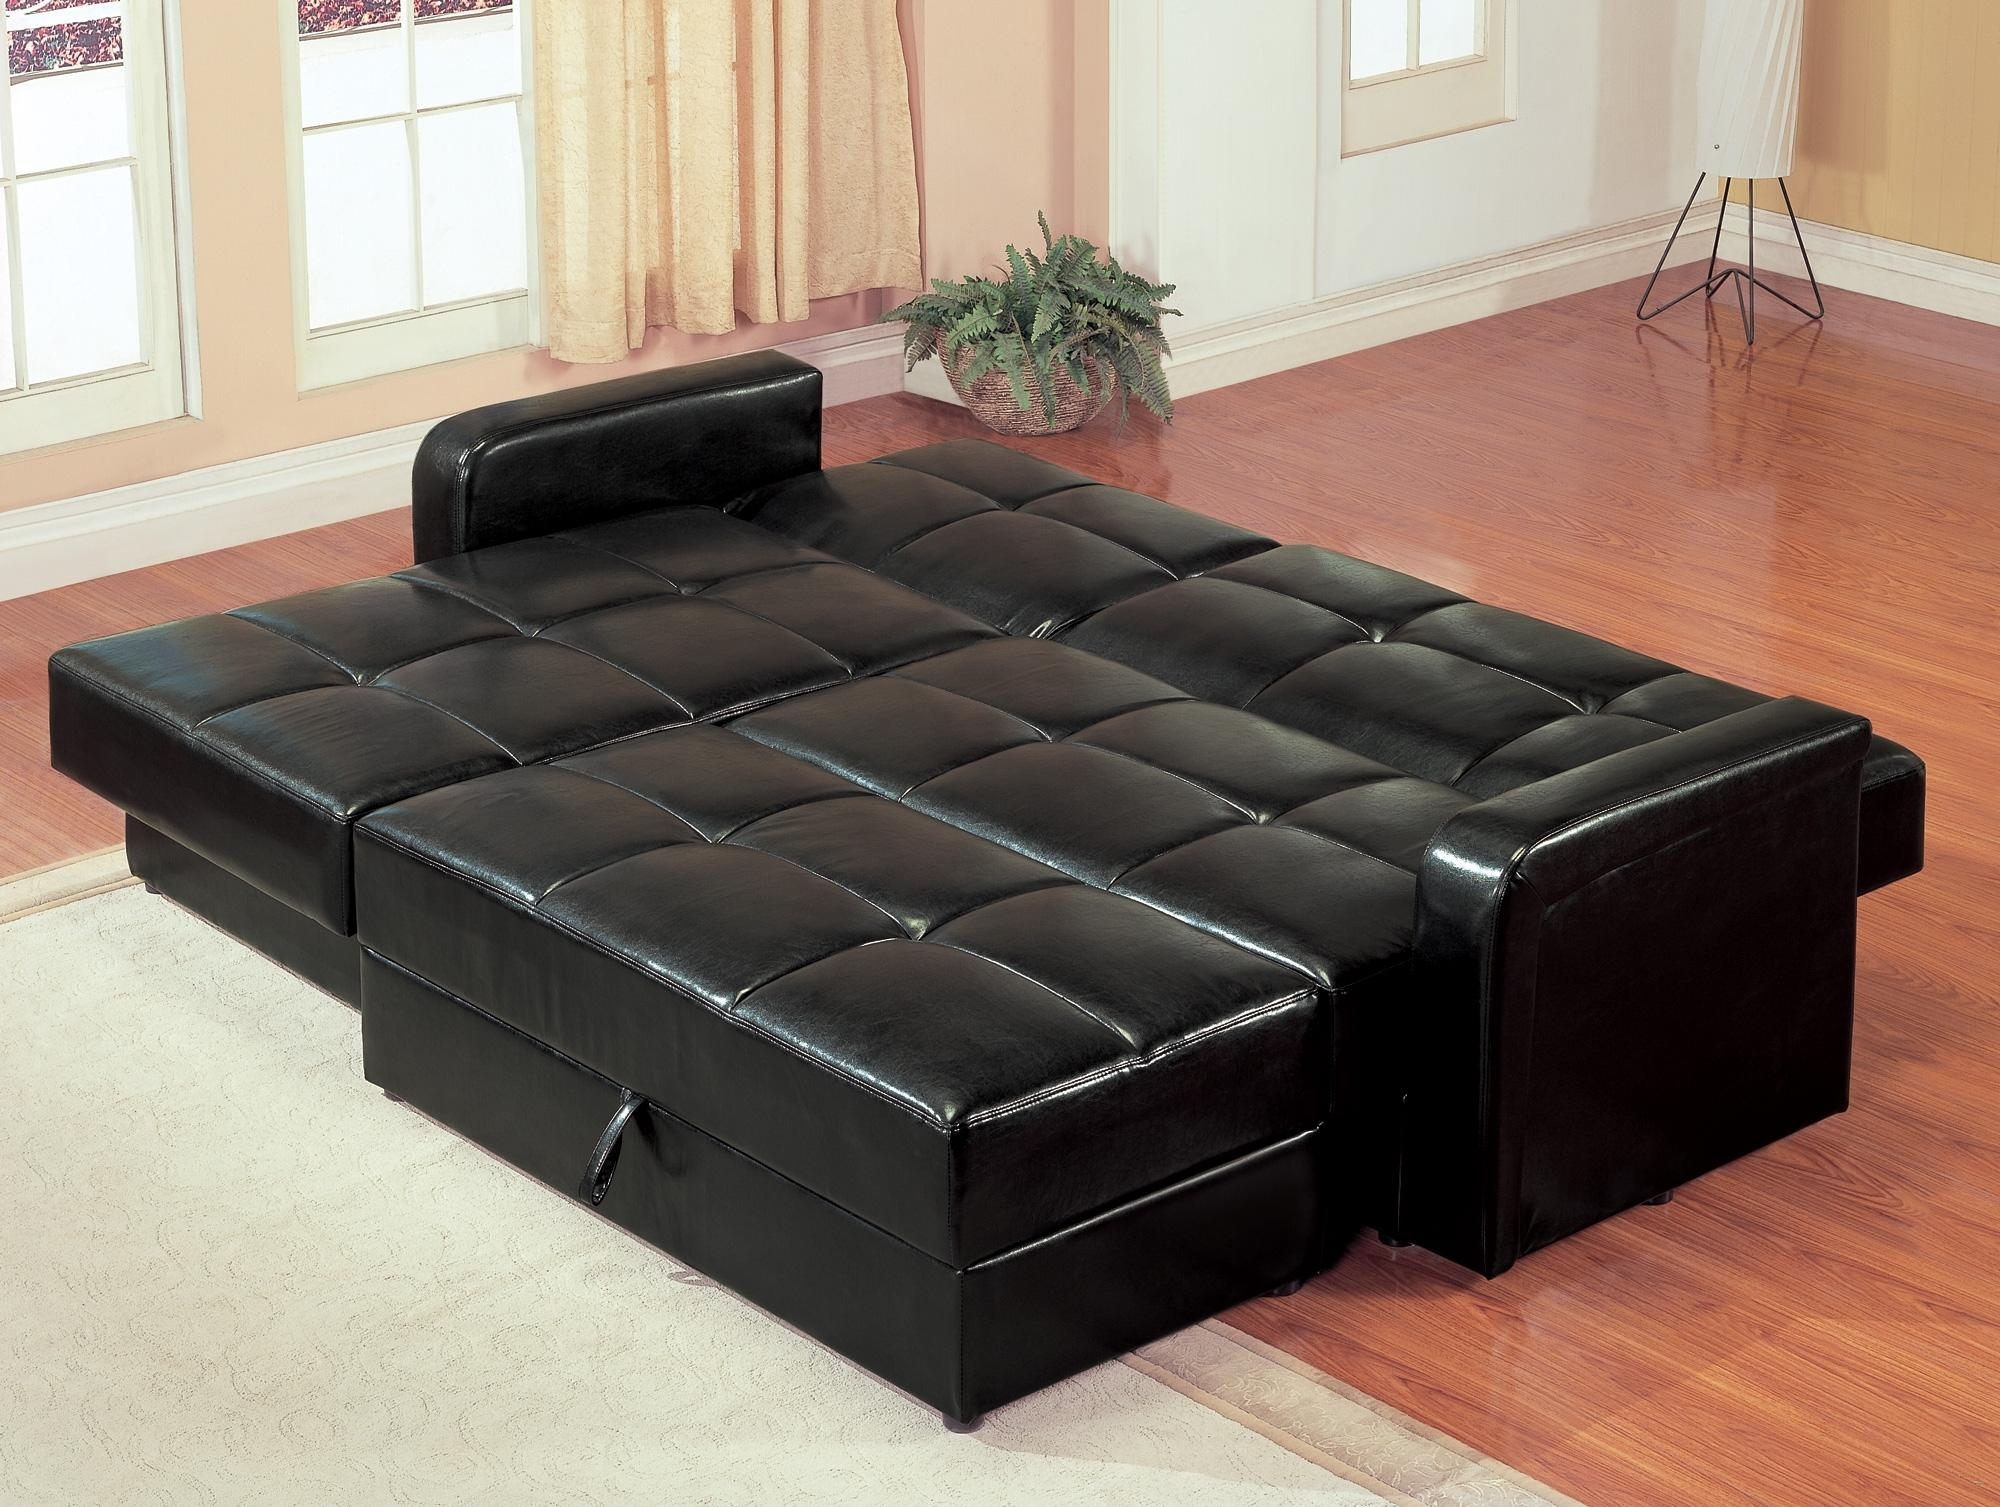 Queen Sofa Bed – Helpformycredit for Sofa Beds Queen